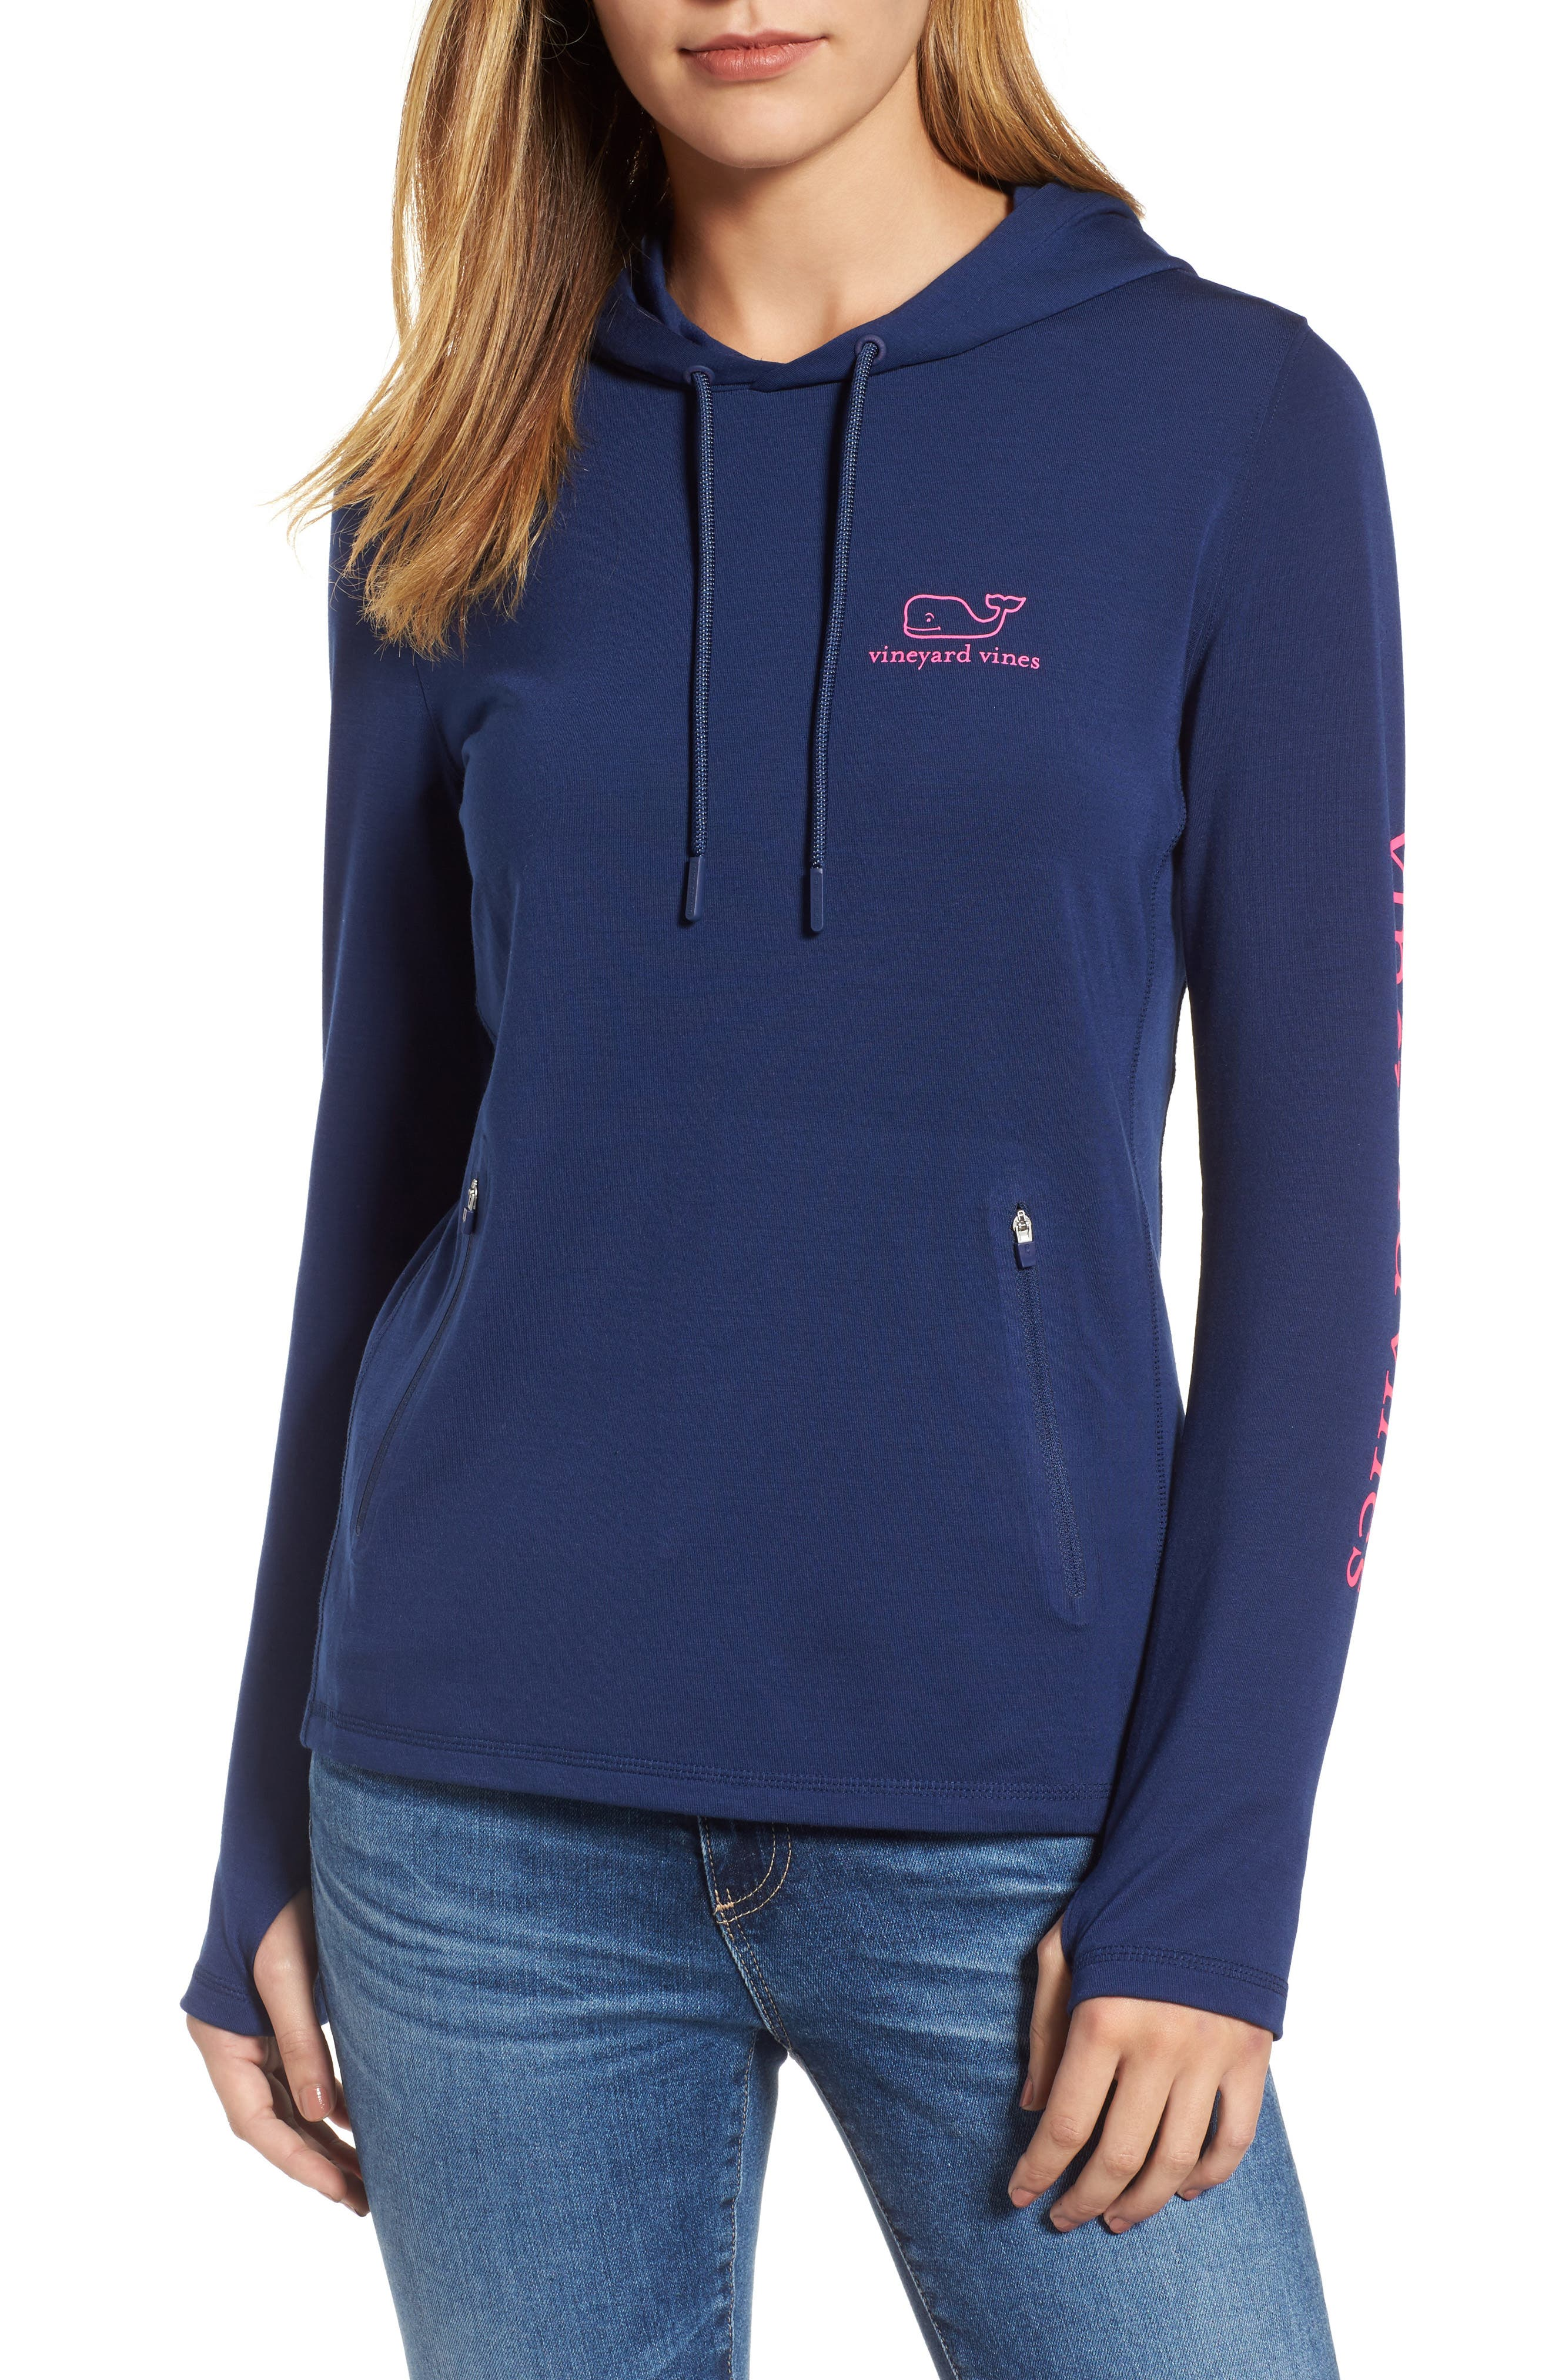 vineyard vines Etched Logo Performance Hoodie